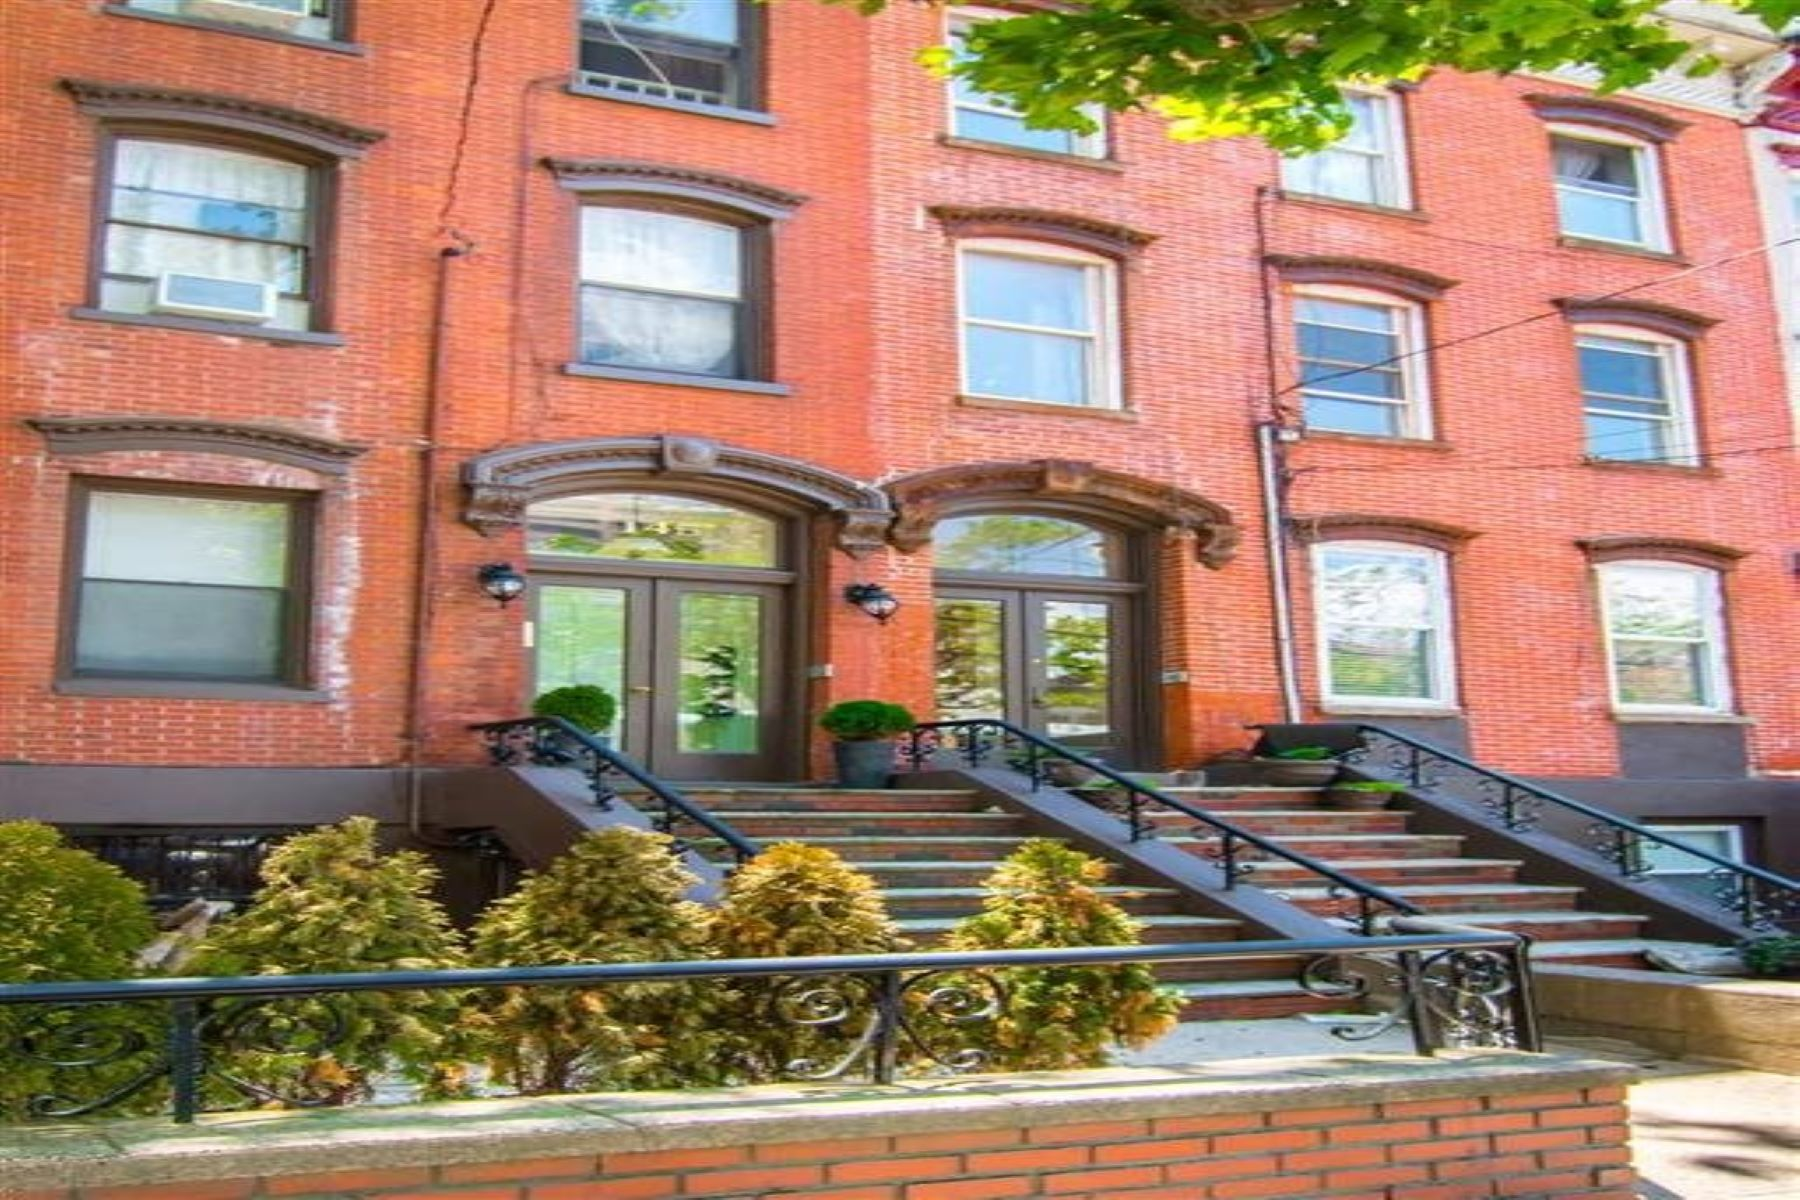 Multi-Family Homes pour l Vente à Investor's Dream! Excellent Condition legal 4 family brownstone. 145 Grand Street, Jersey City, New Jersey 07302 États-Unis